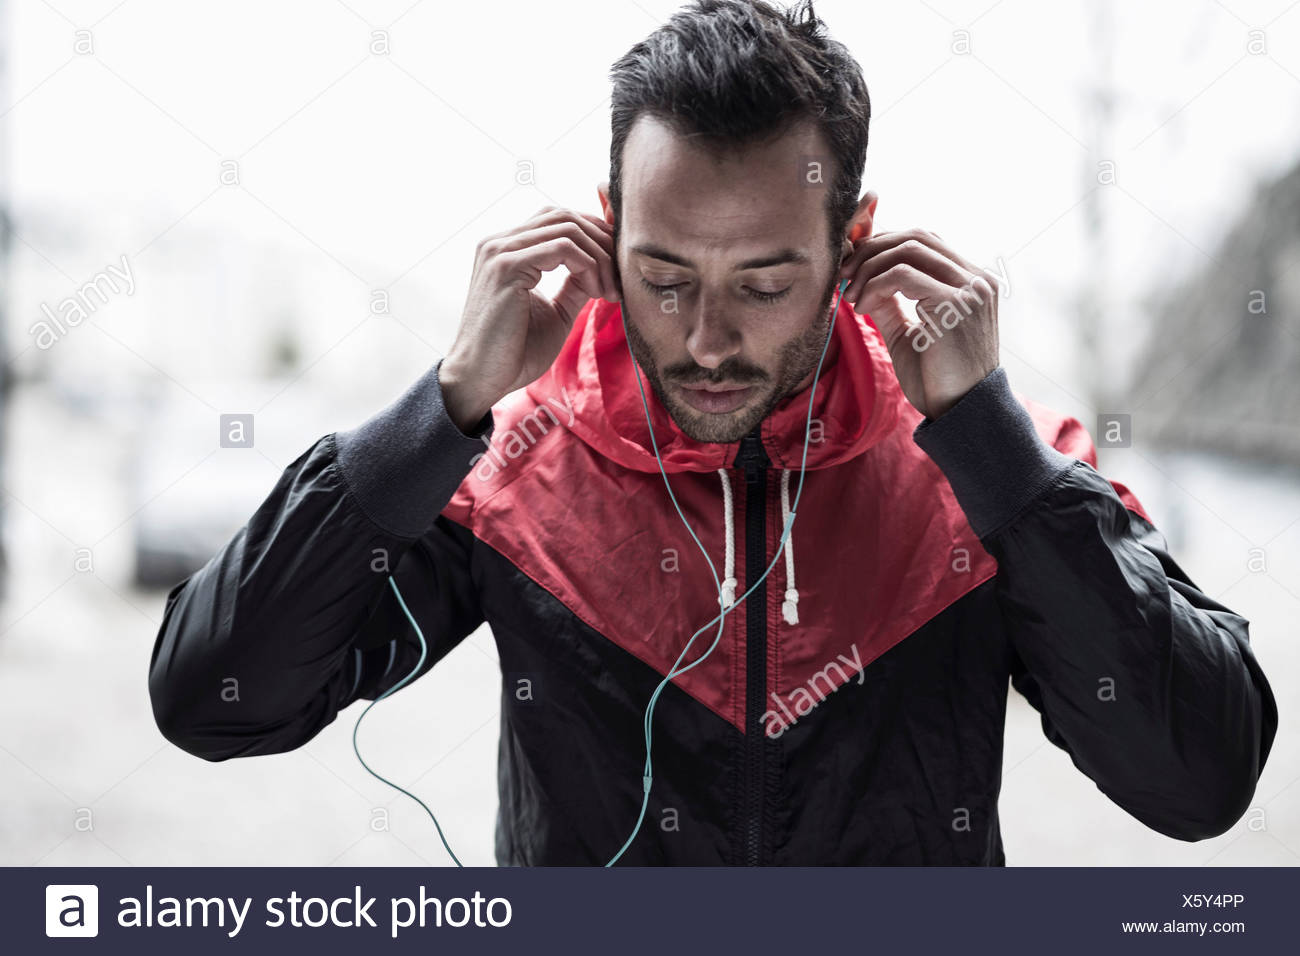 Sporty man in jacket adjusting headphones - Stock Image